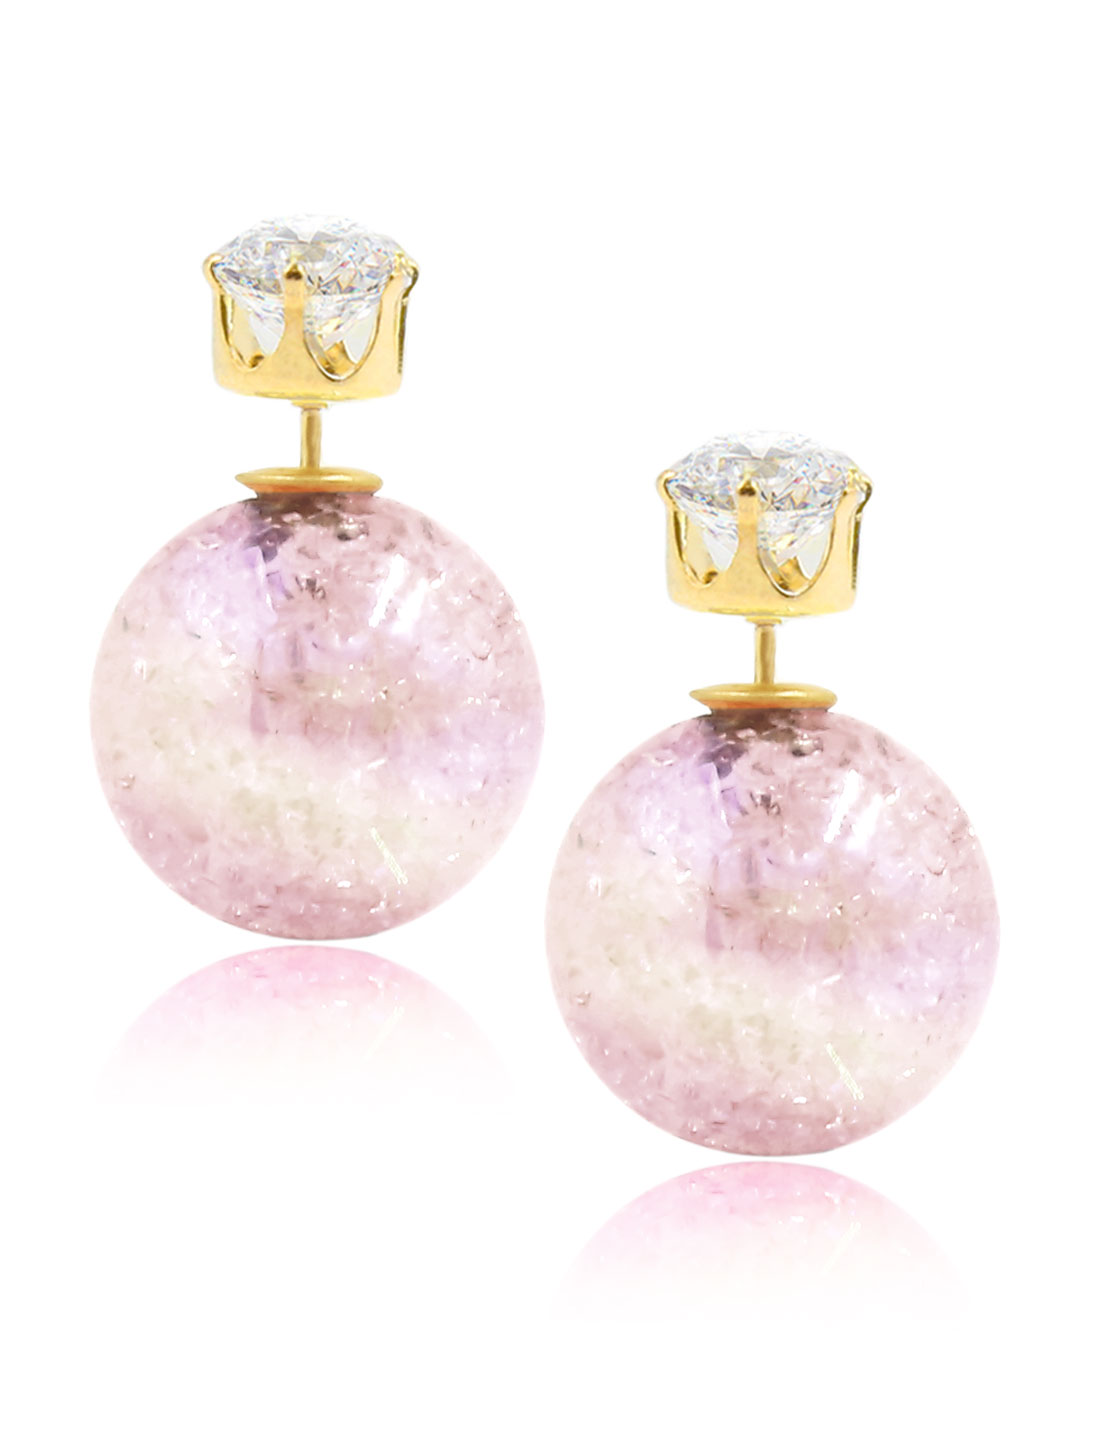 Fashion Women Elegant Double Sides Zircon Faux Crystal Ball Illusion-colour Earrings Ear Stud 1 Pair Light Pink